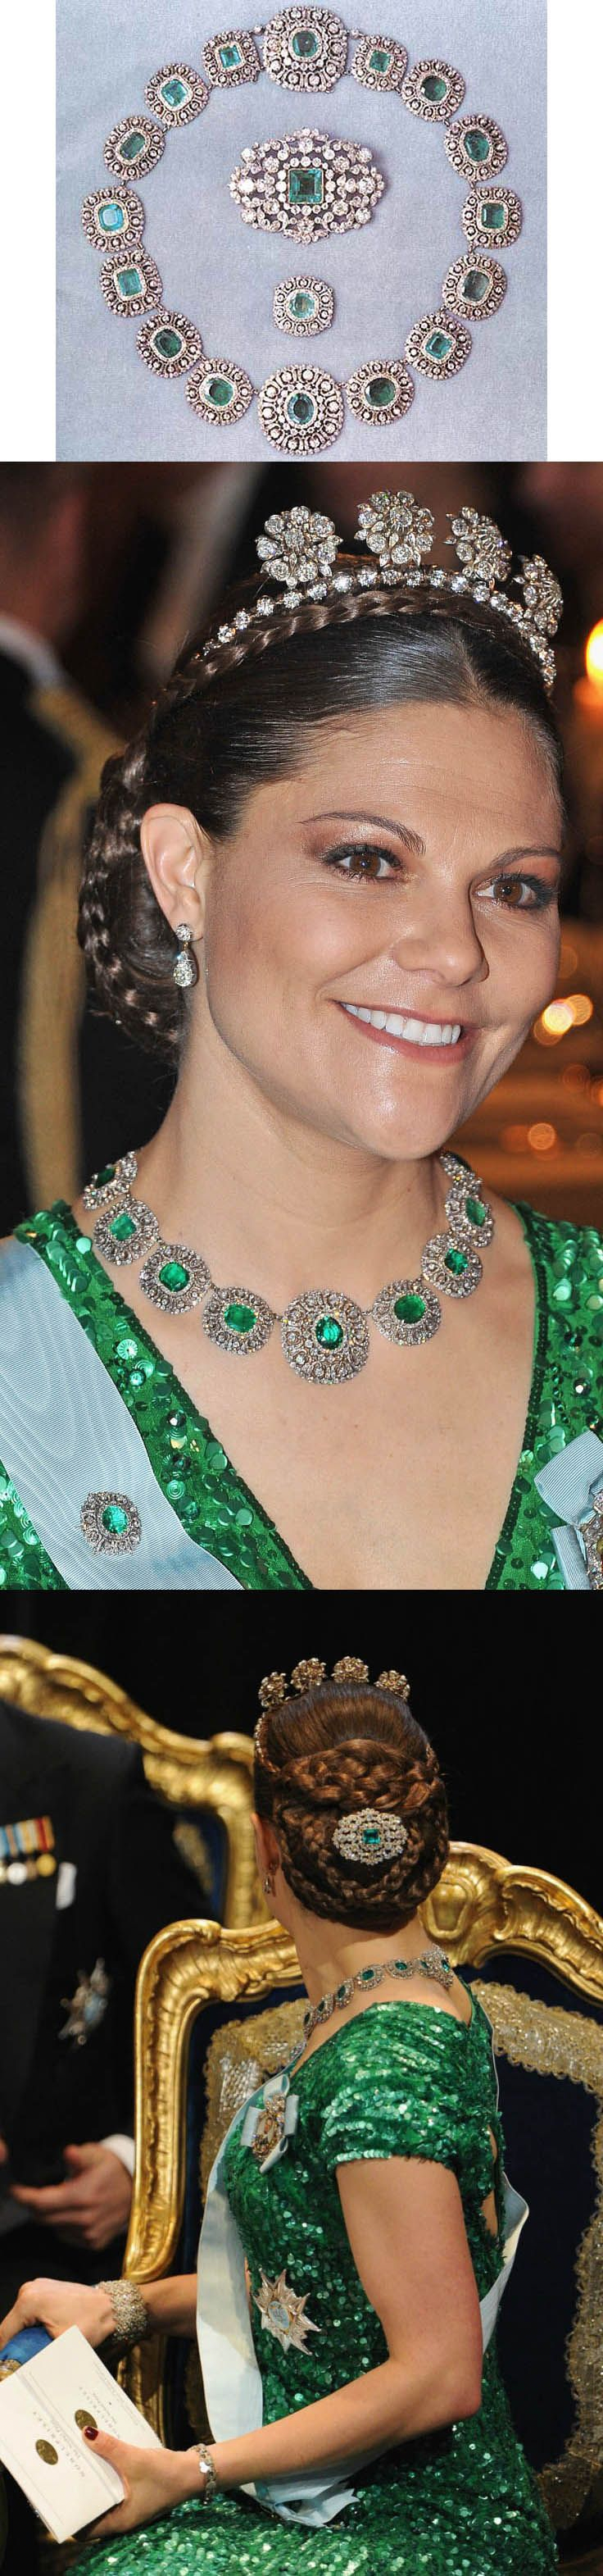 Emerald Demi-parure. The demi-parure comprises of a belt and two brooches. The belt is used as a necklace today. The emeralds were mentioned in the very first documentation of the Bernadotte Family Foundation (the jewels of the Royal House of Sweden) in 1844. The first Bernadotte king, Charles XIV John of Sweden, laid the foundation to a collection that would be owned by the Head of the Royal House and be at the disposition of the queens. Crown Princess Victoria wearing the jewels.